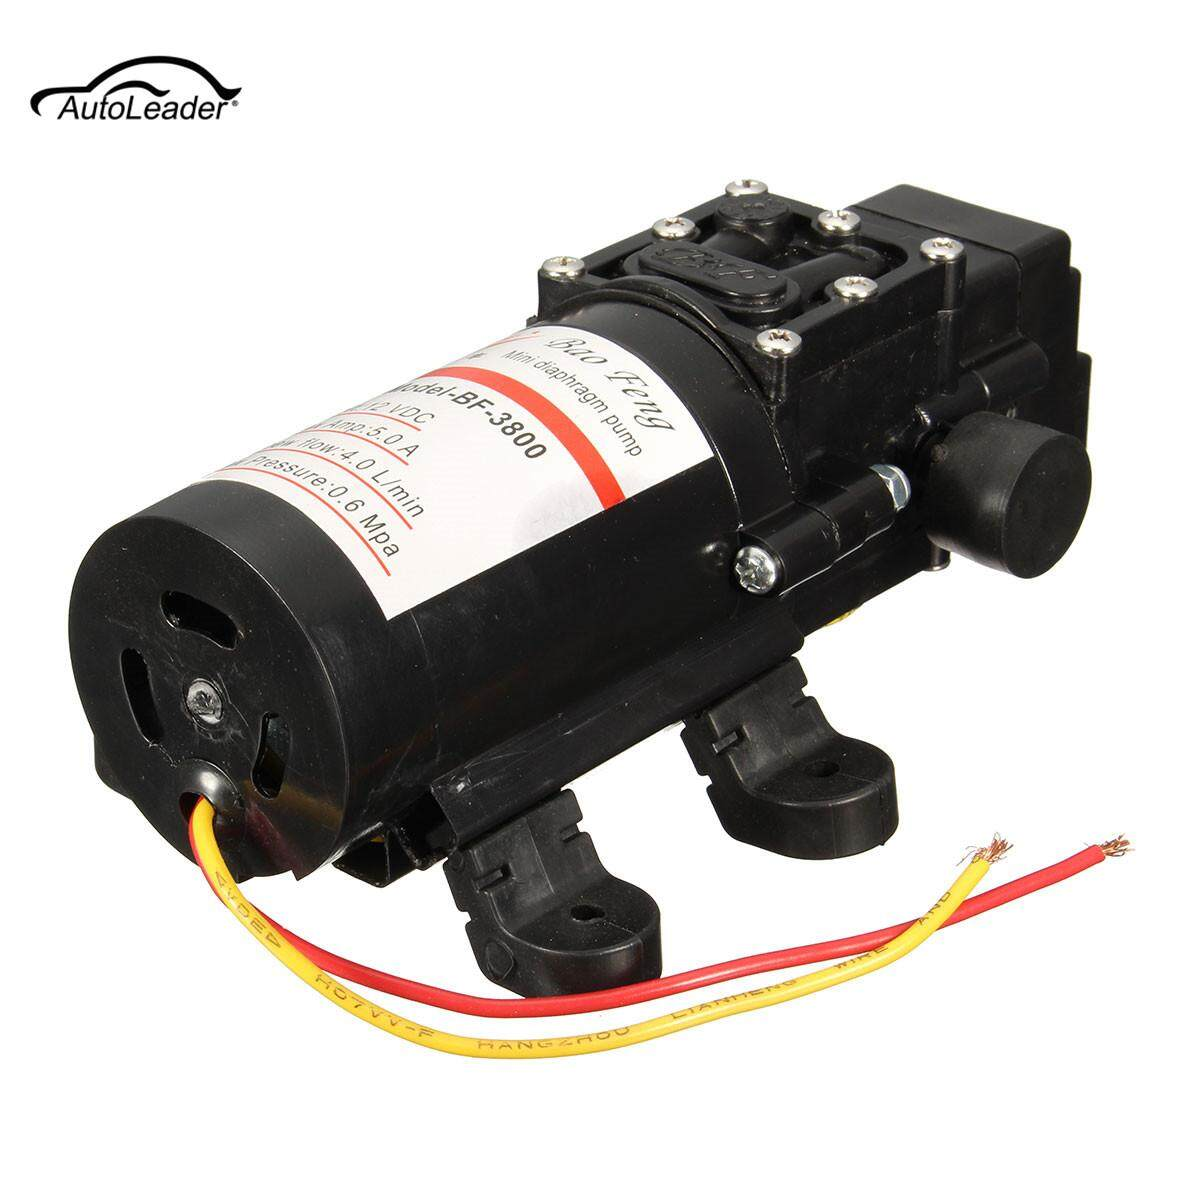 60W BF-3800 OPHIR RV /Marine 12V DC Demand Fresh Water Diaphragm Self  Priming Pump Low Pressure